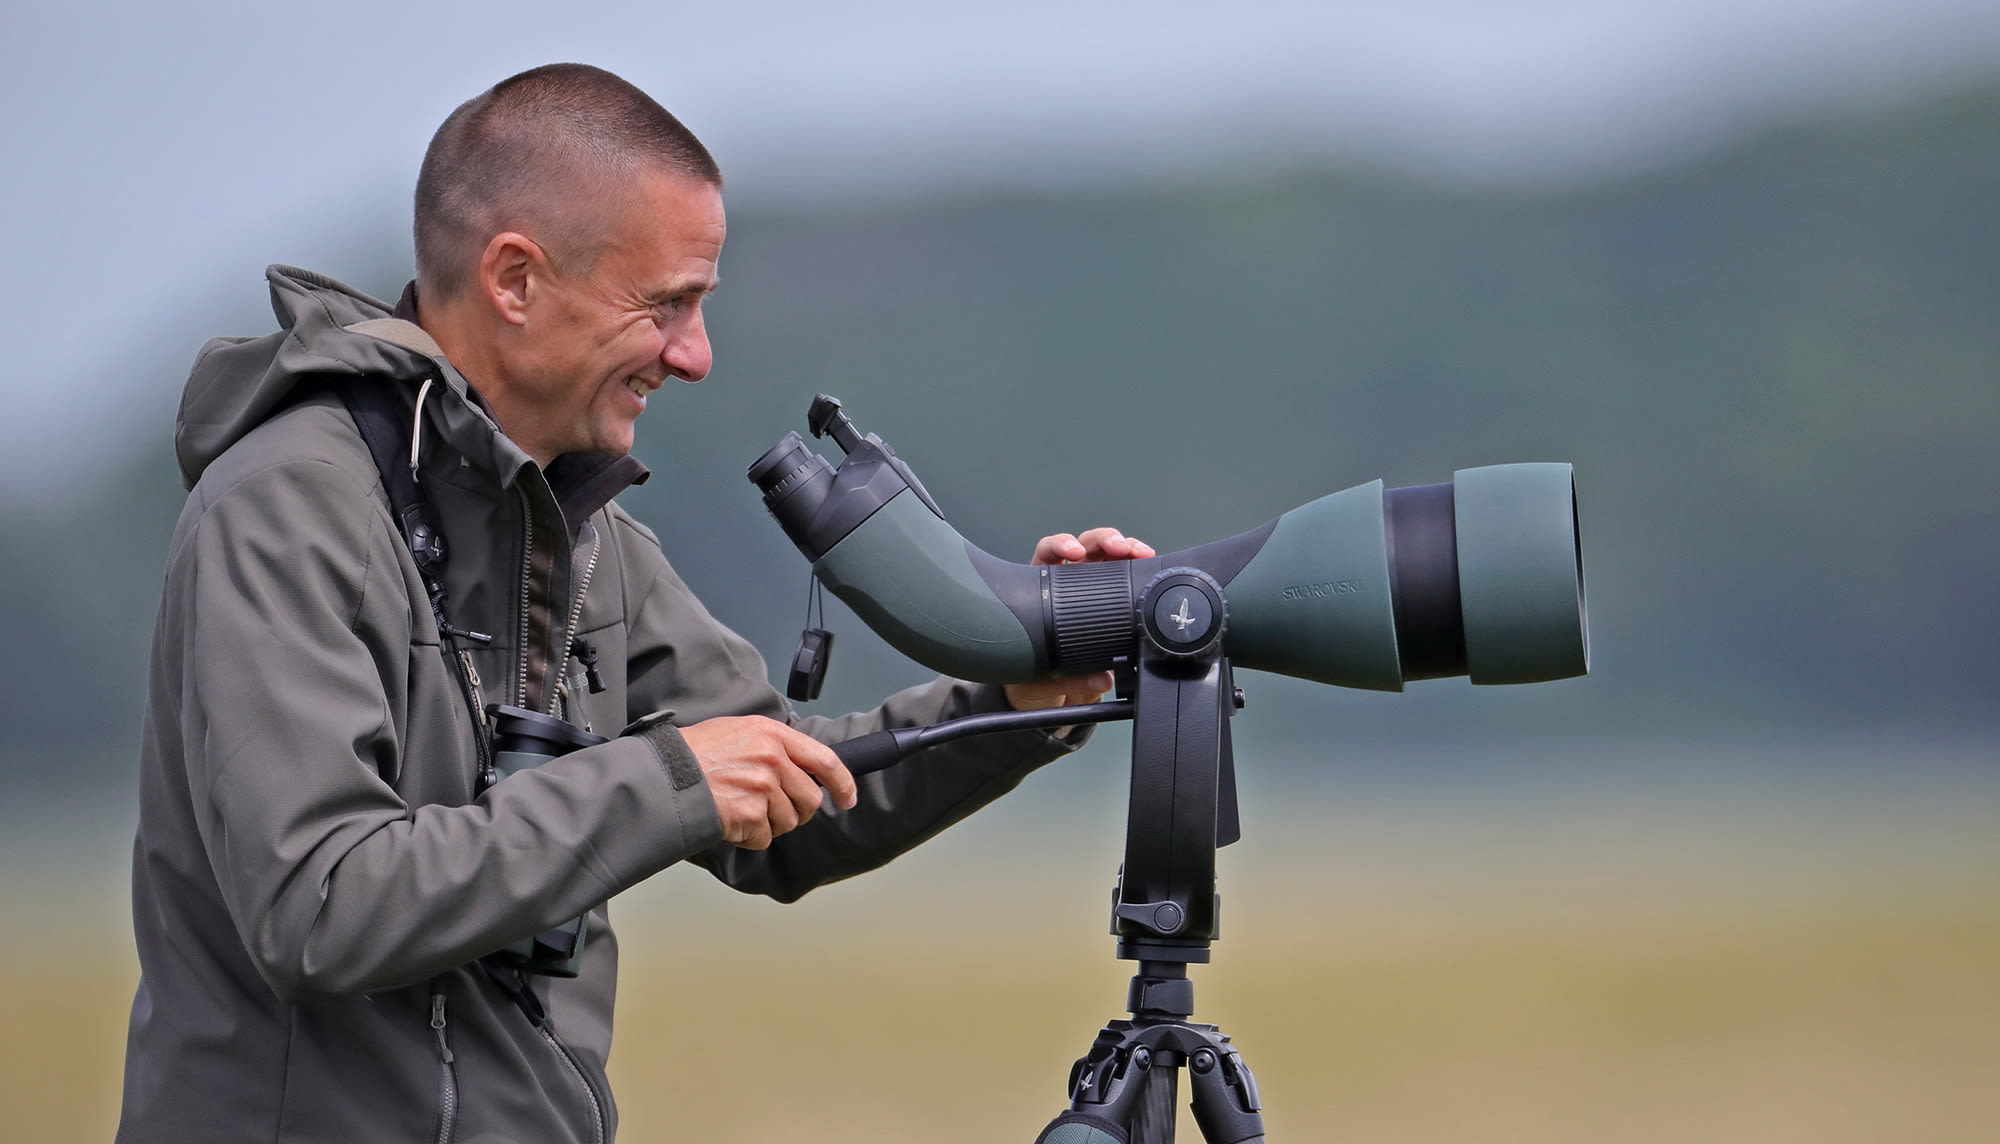 A joint adventure: Mark and Nils seawatching with the SWAROVSKI OPTIK 115-mm objective module - Mark Collier went birding on the Dutch coastline with the BTX 115-mm objective module